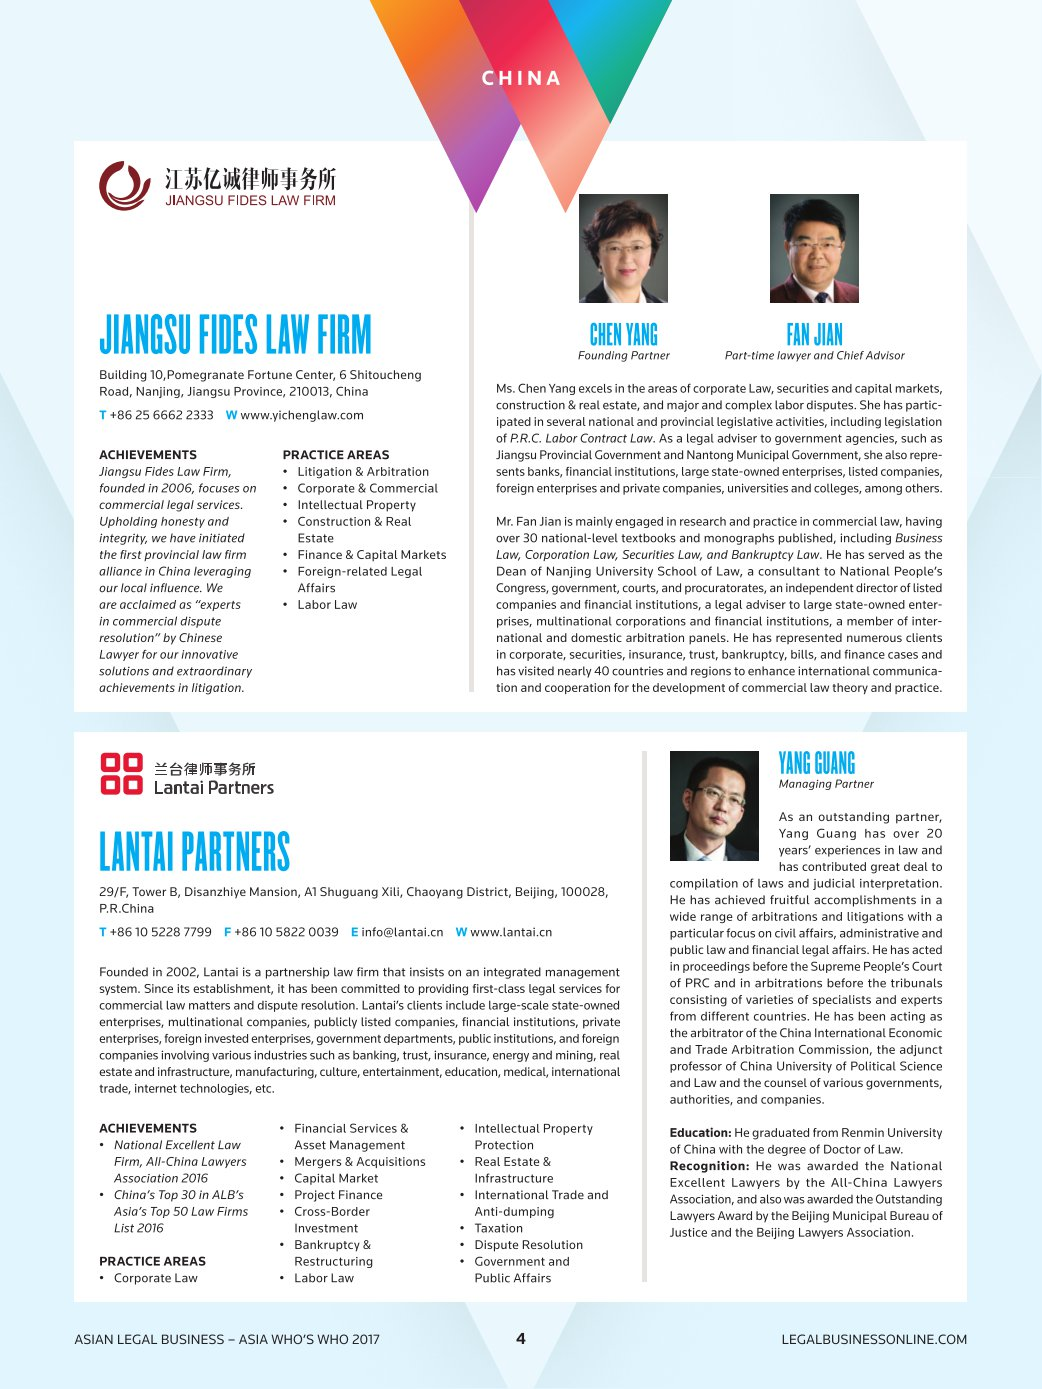 ASIAN LEGAL BUSINESS ASIAS WHOS WHO 2017